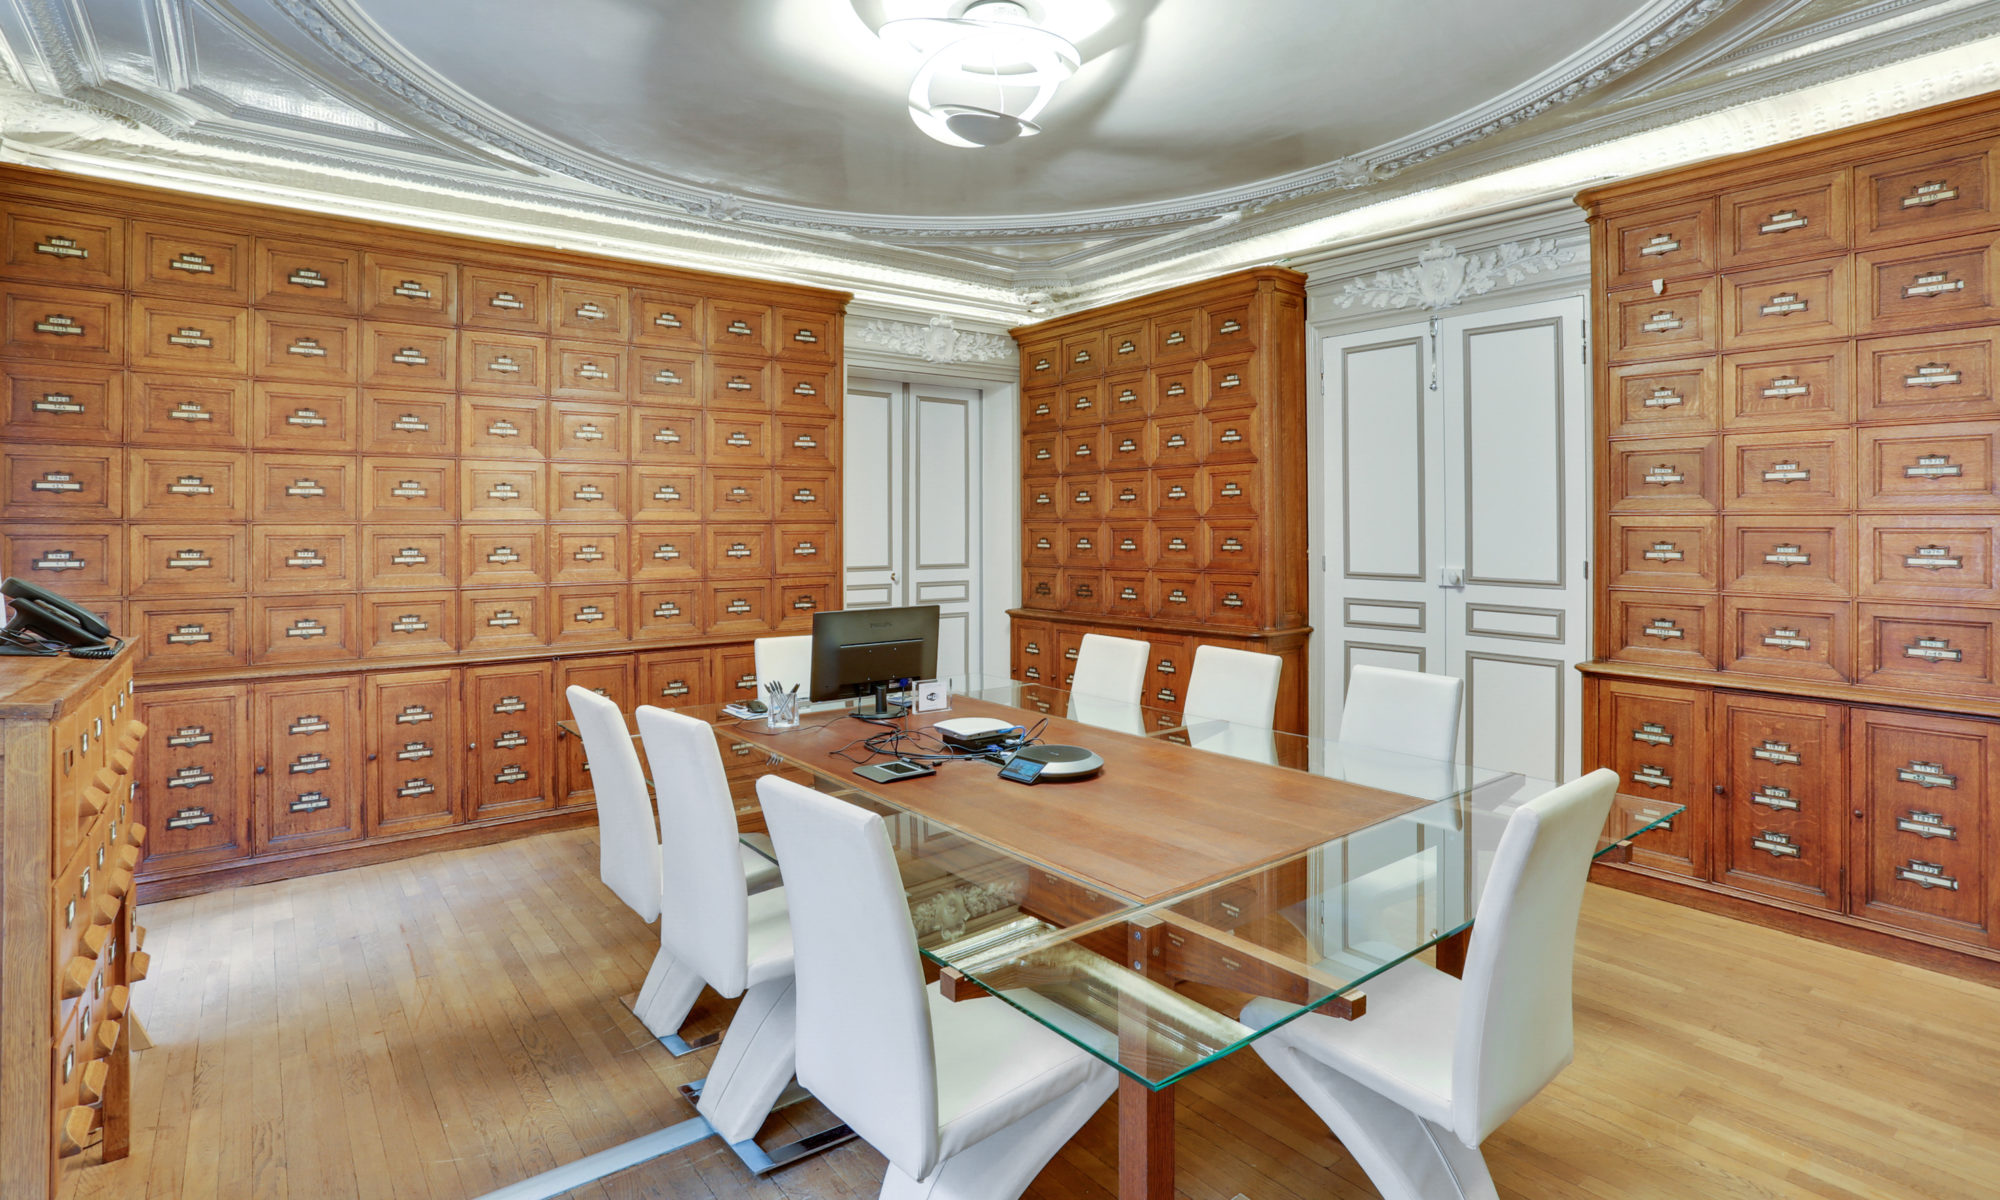 L'Office Notarial de Paris Saint-Lazare